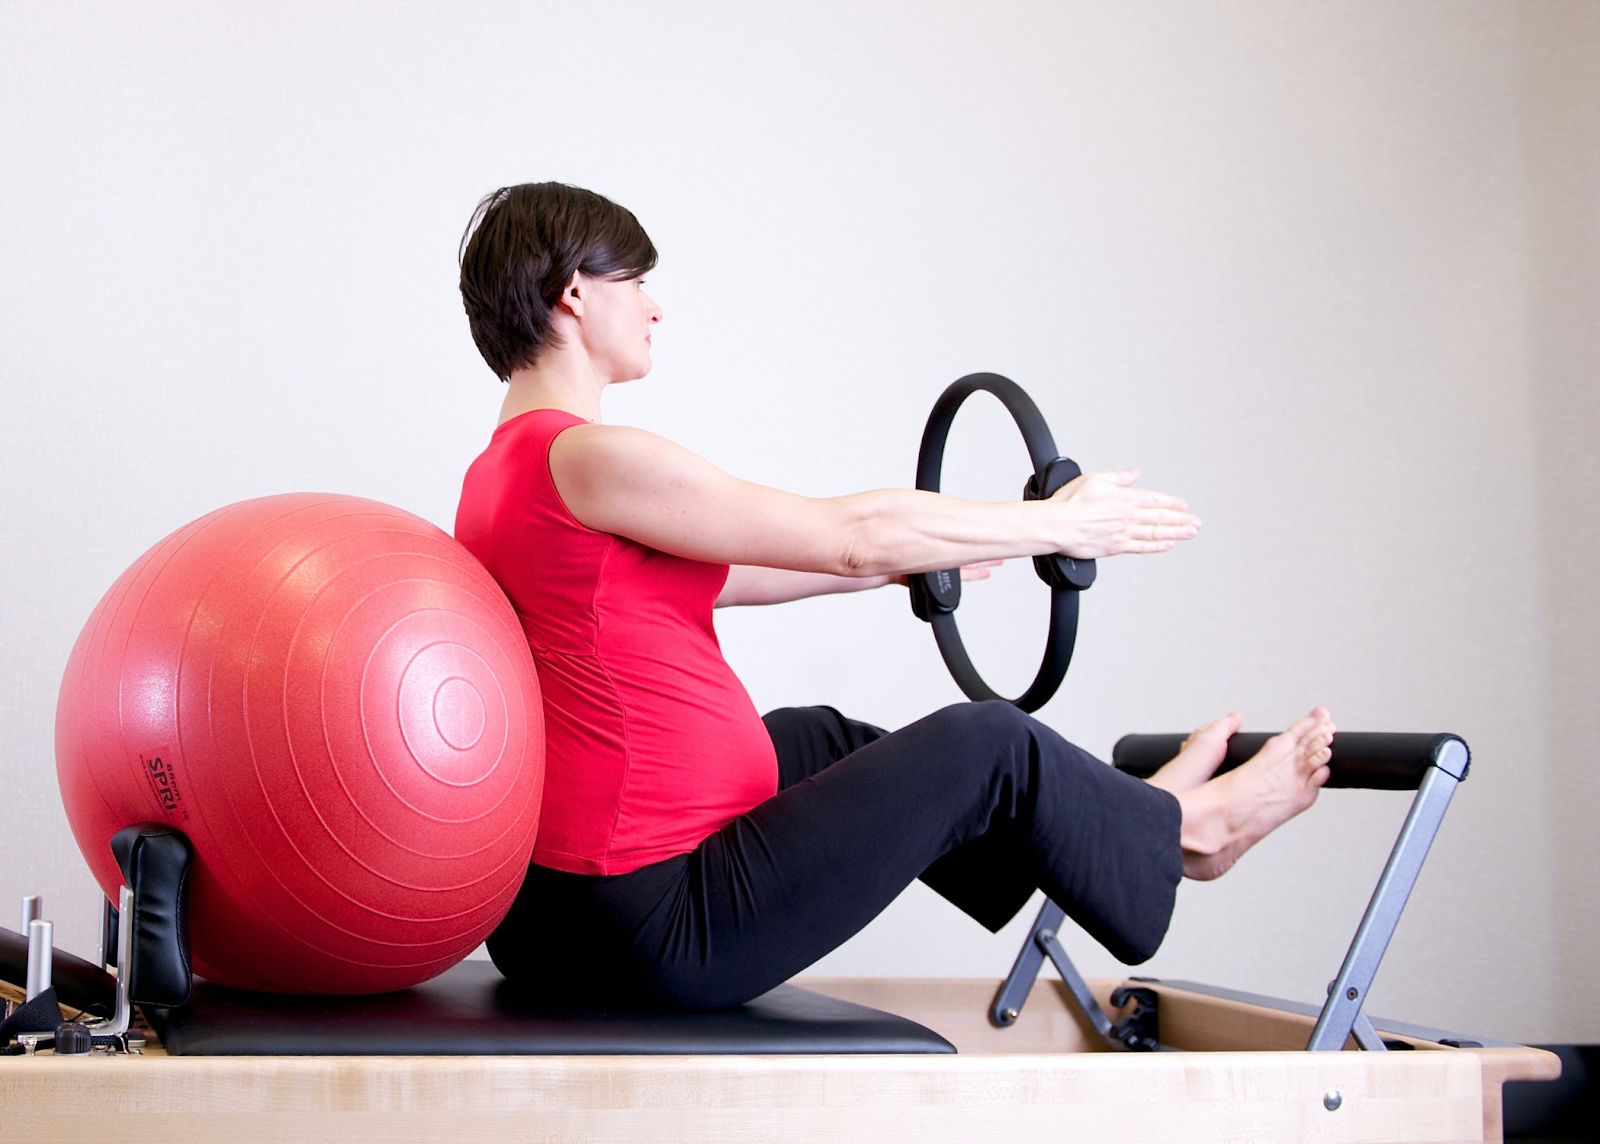 An image of a pregnant woman wearing red leaning up against a red exercise ball. She is resting her feet on an elevated bar and is holding a black ring between her arms.